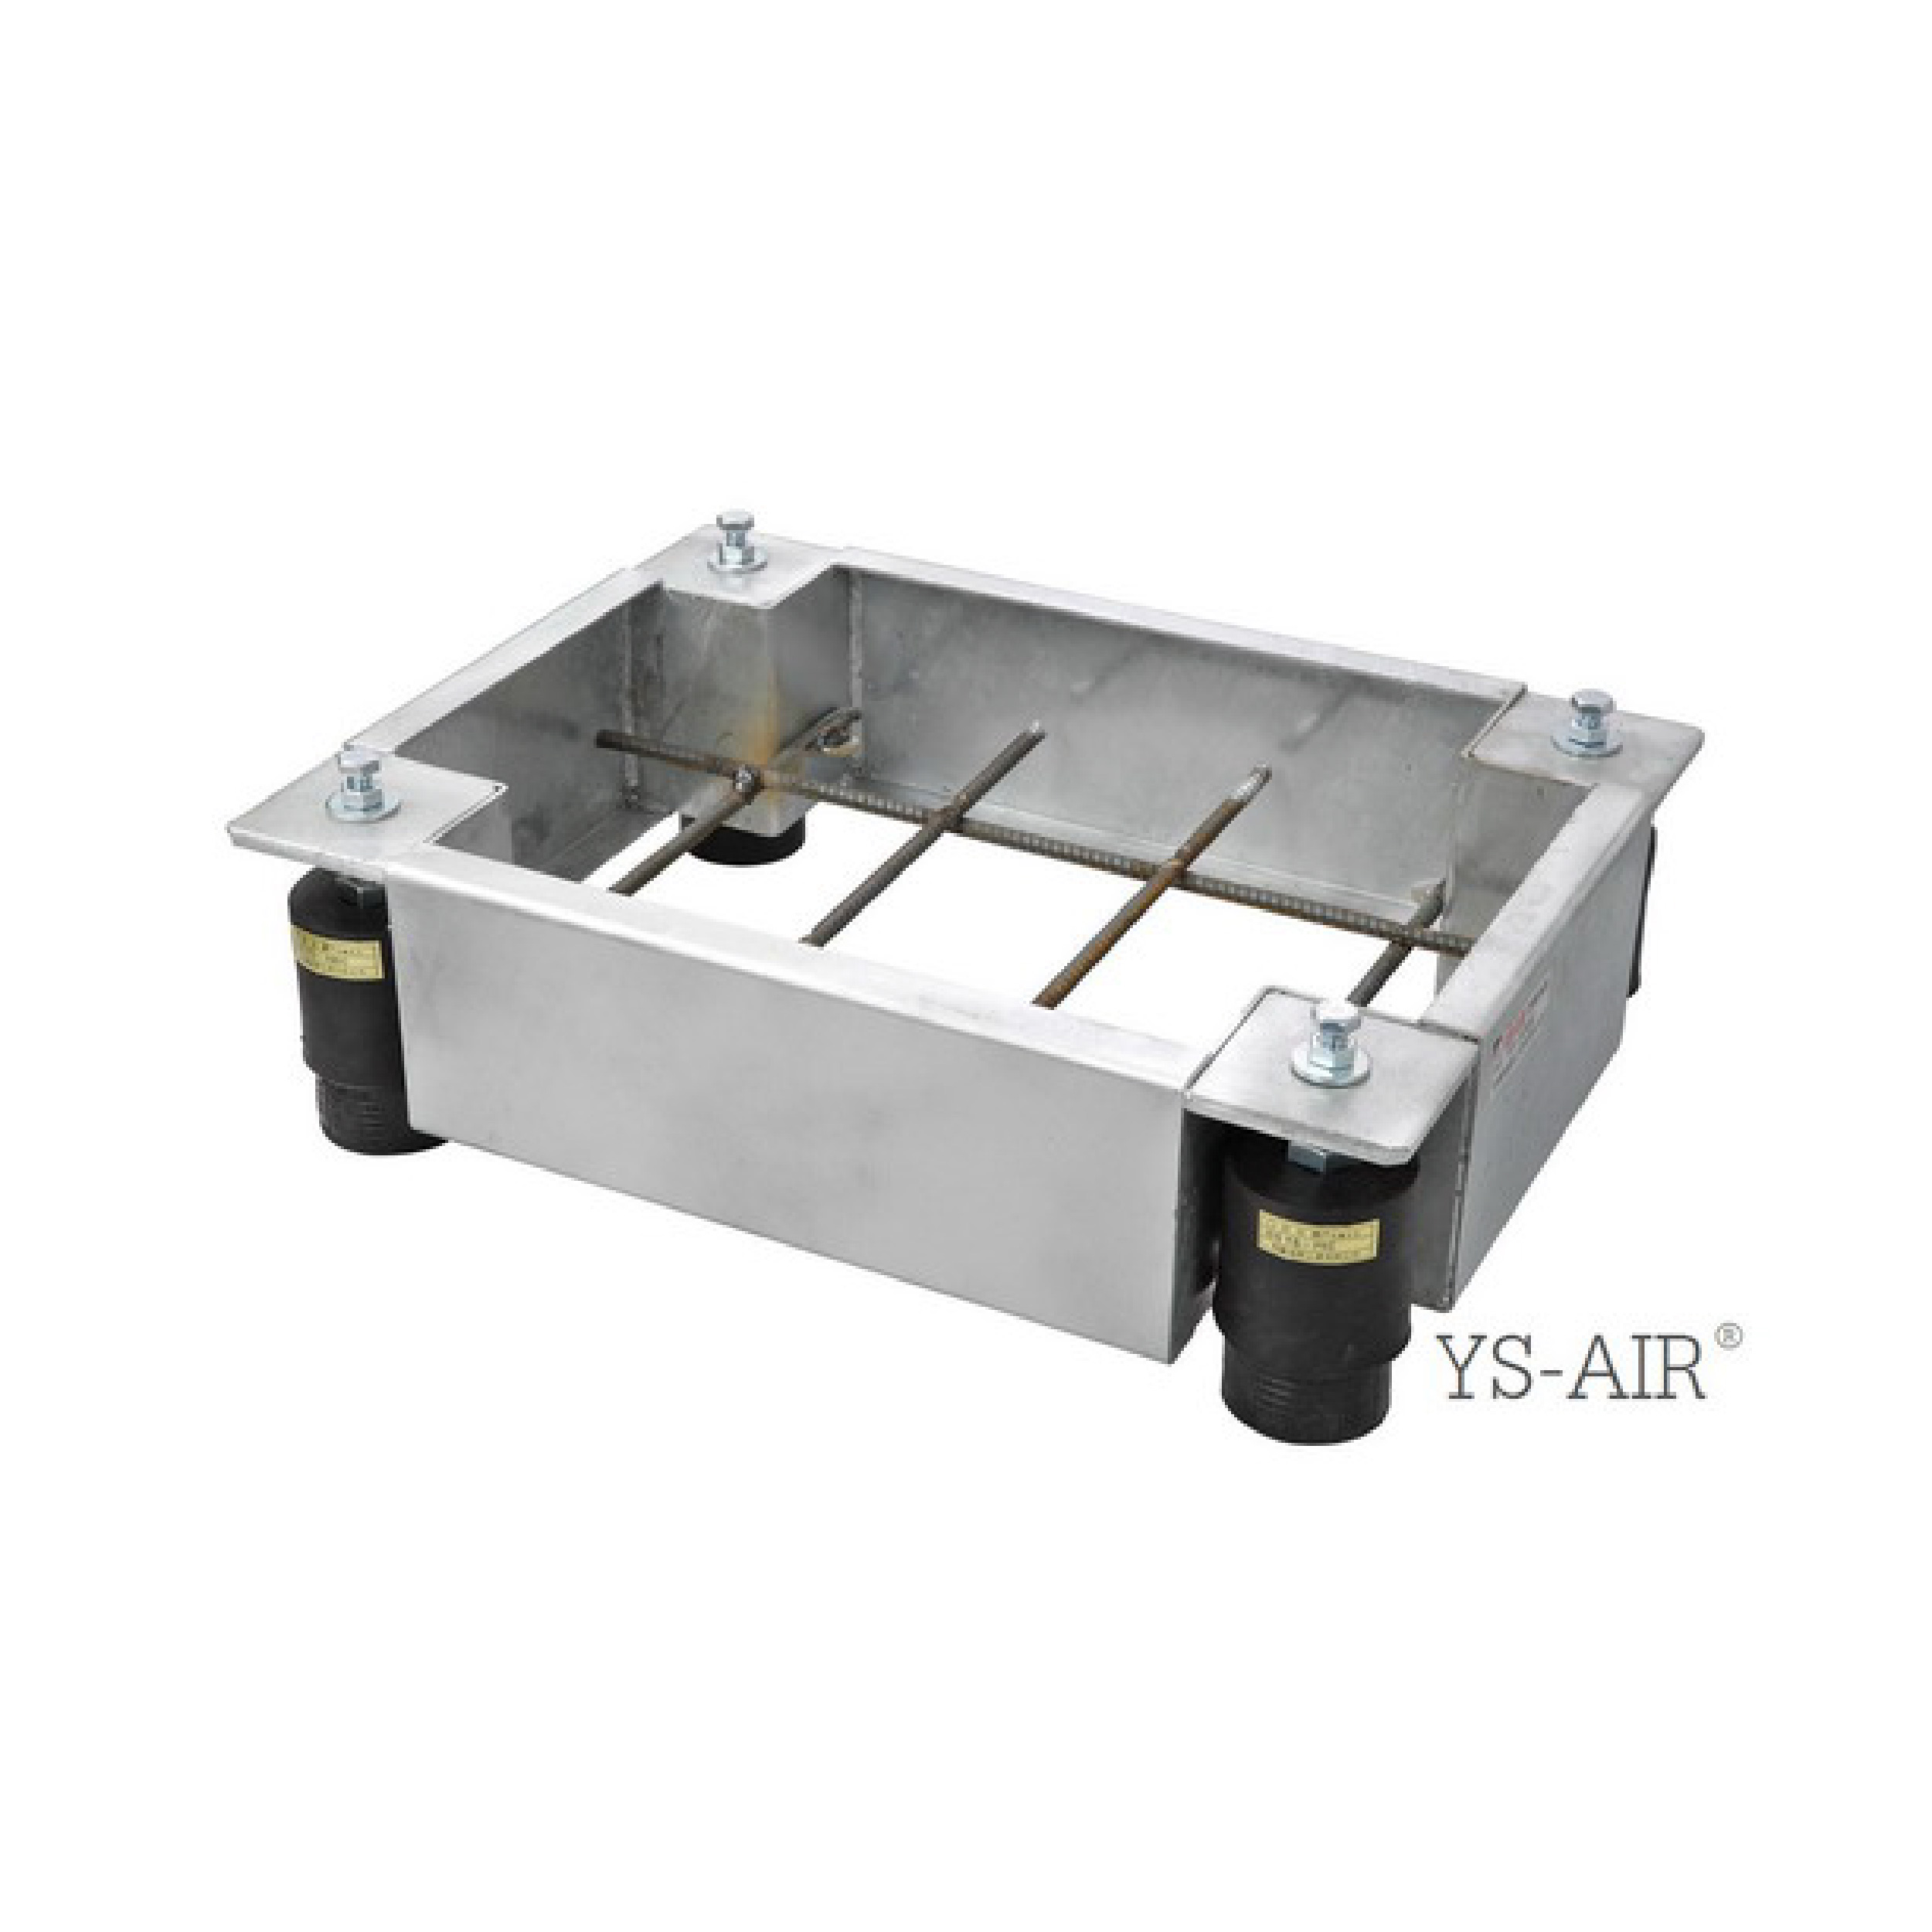 Spring Type Anti-Vibration Base for Air-Conditioner/YS-E Type anti-vibration base (for grouting)